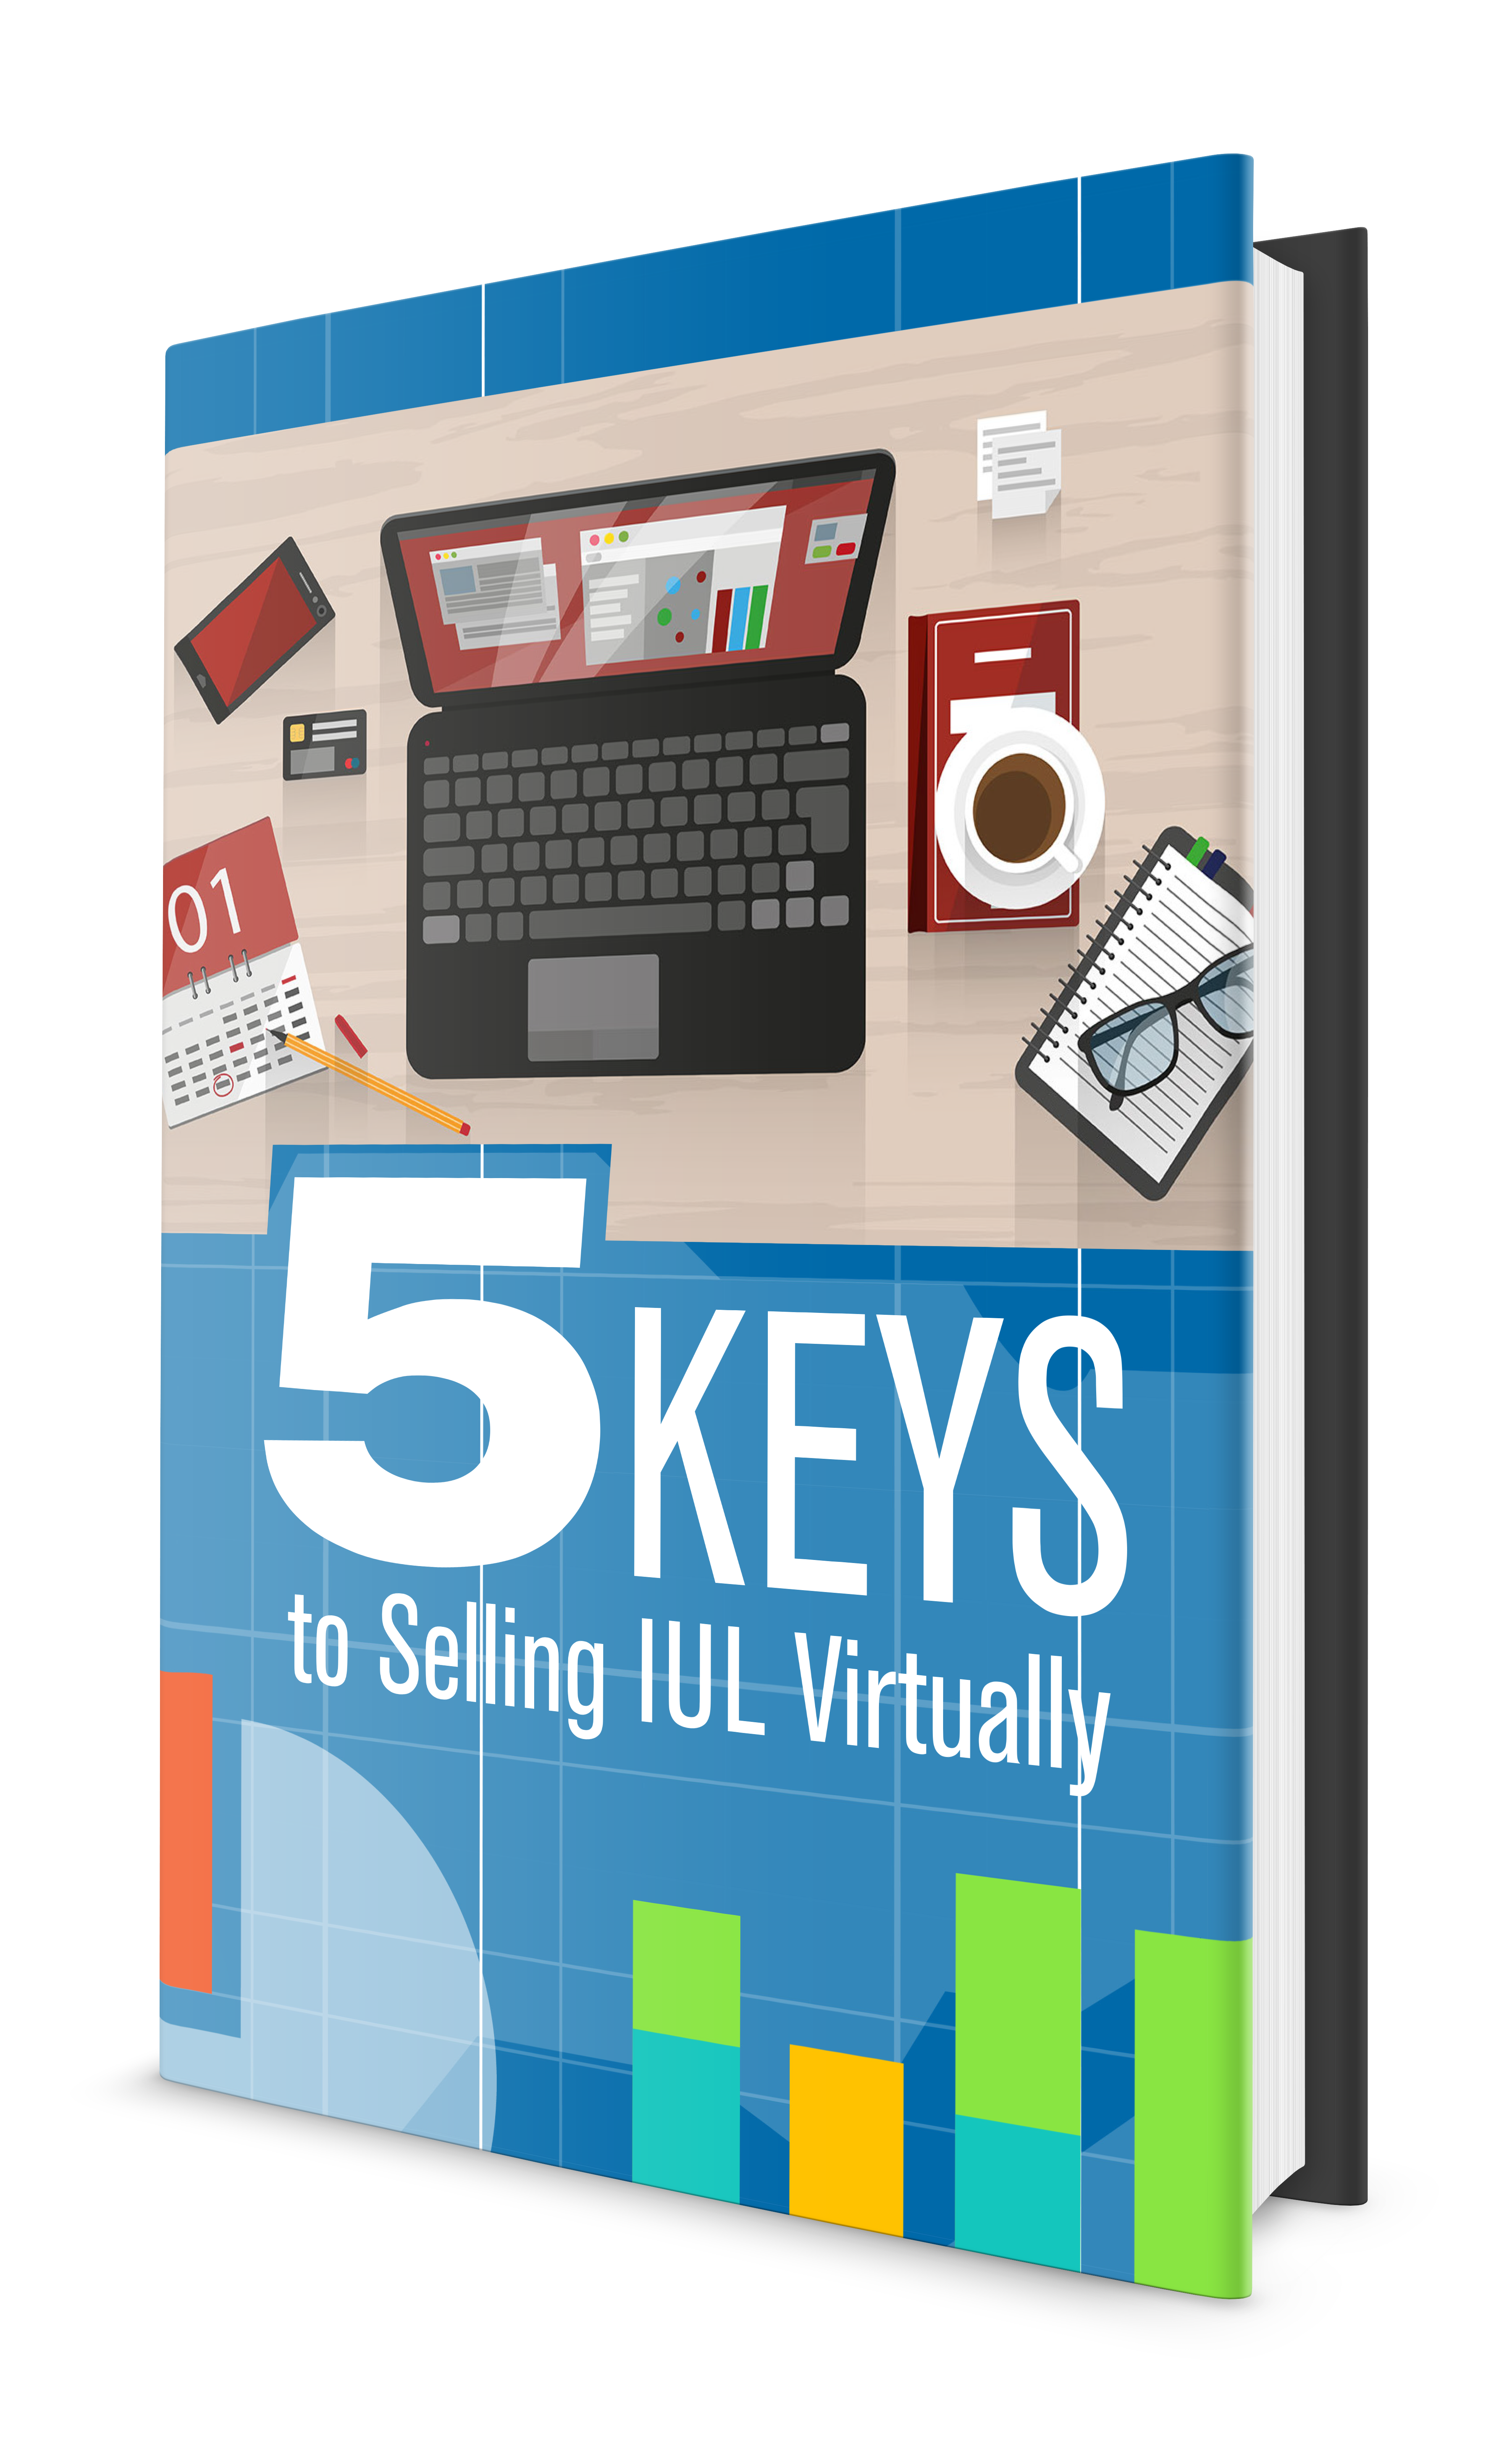 5 Keys to Selling IUL Virtually